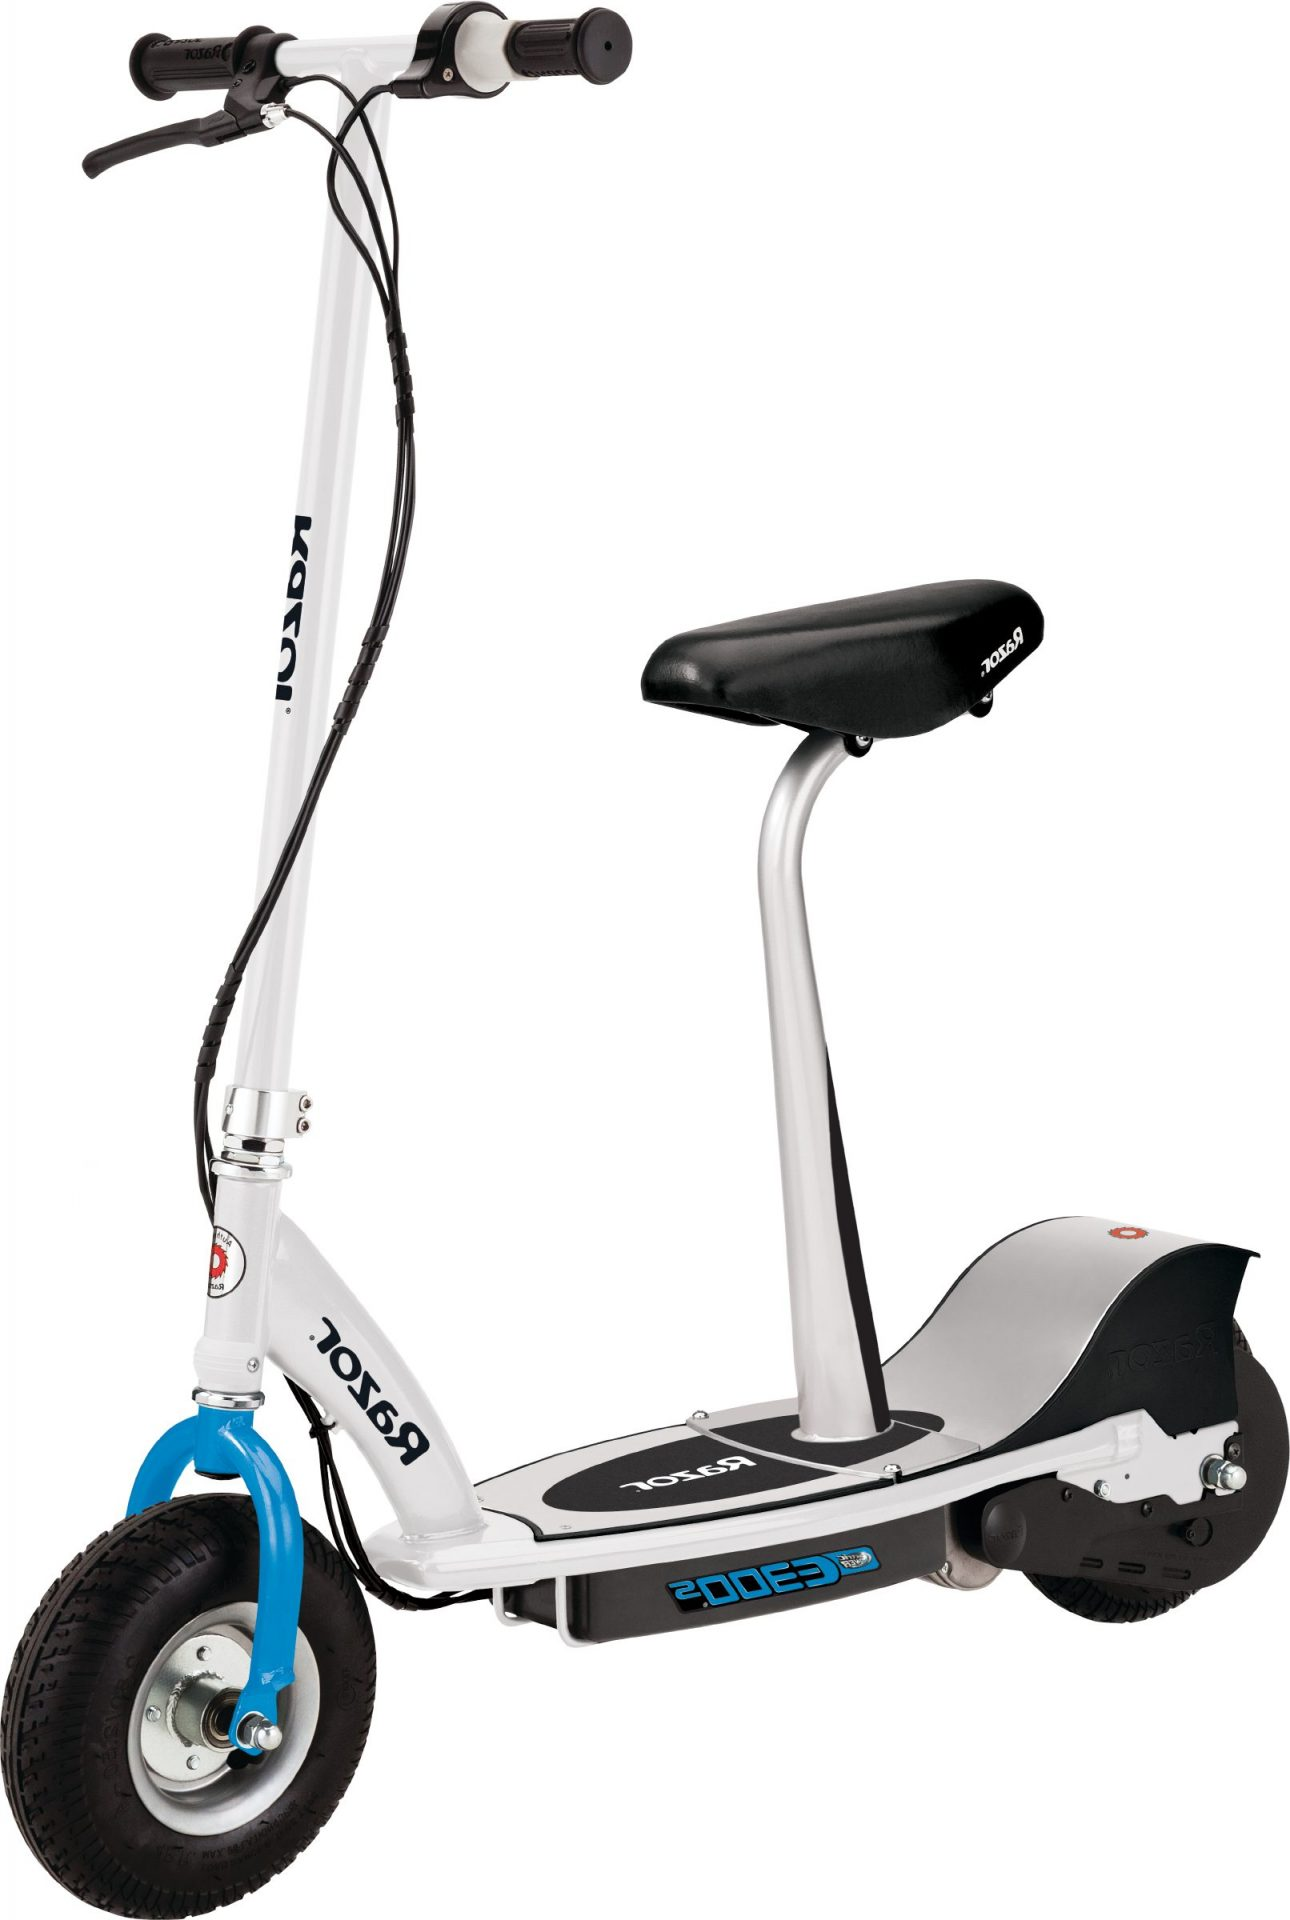 Best Electric Scooter for Kids 2020 - Electric Travel